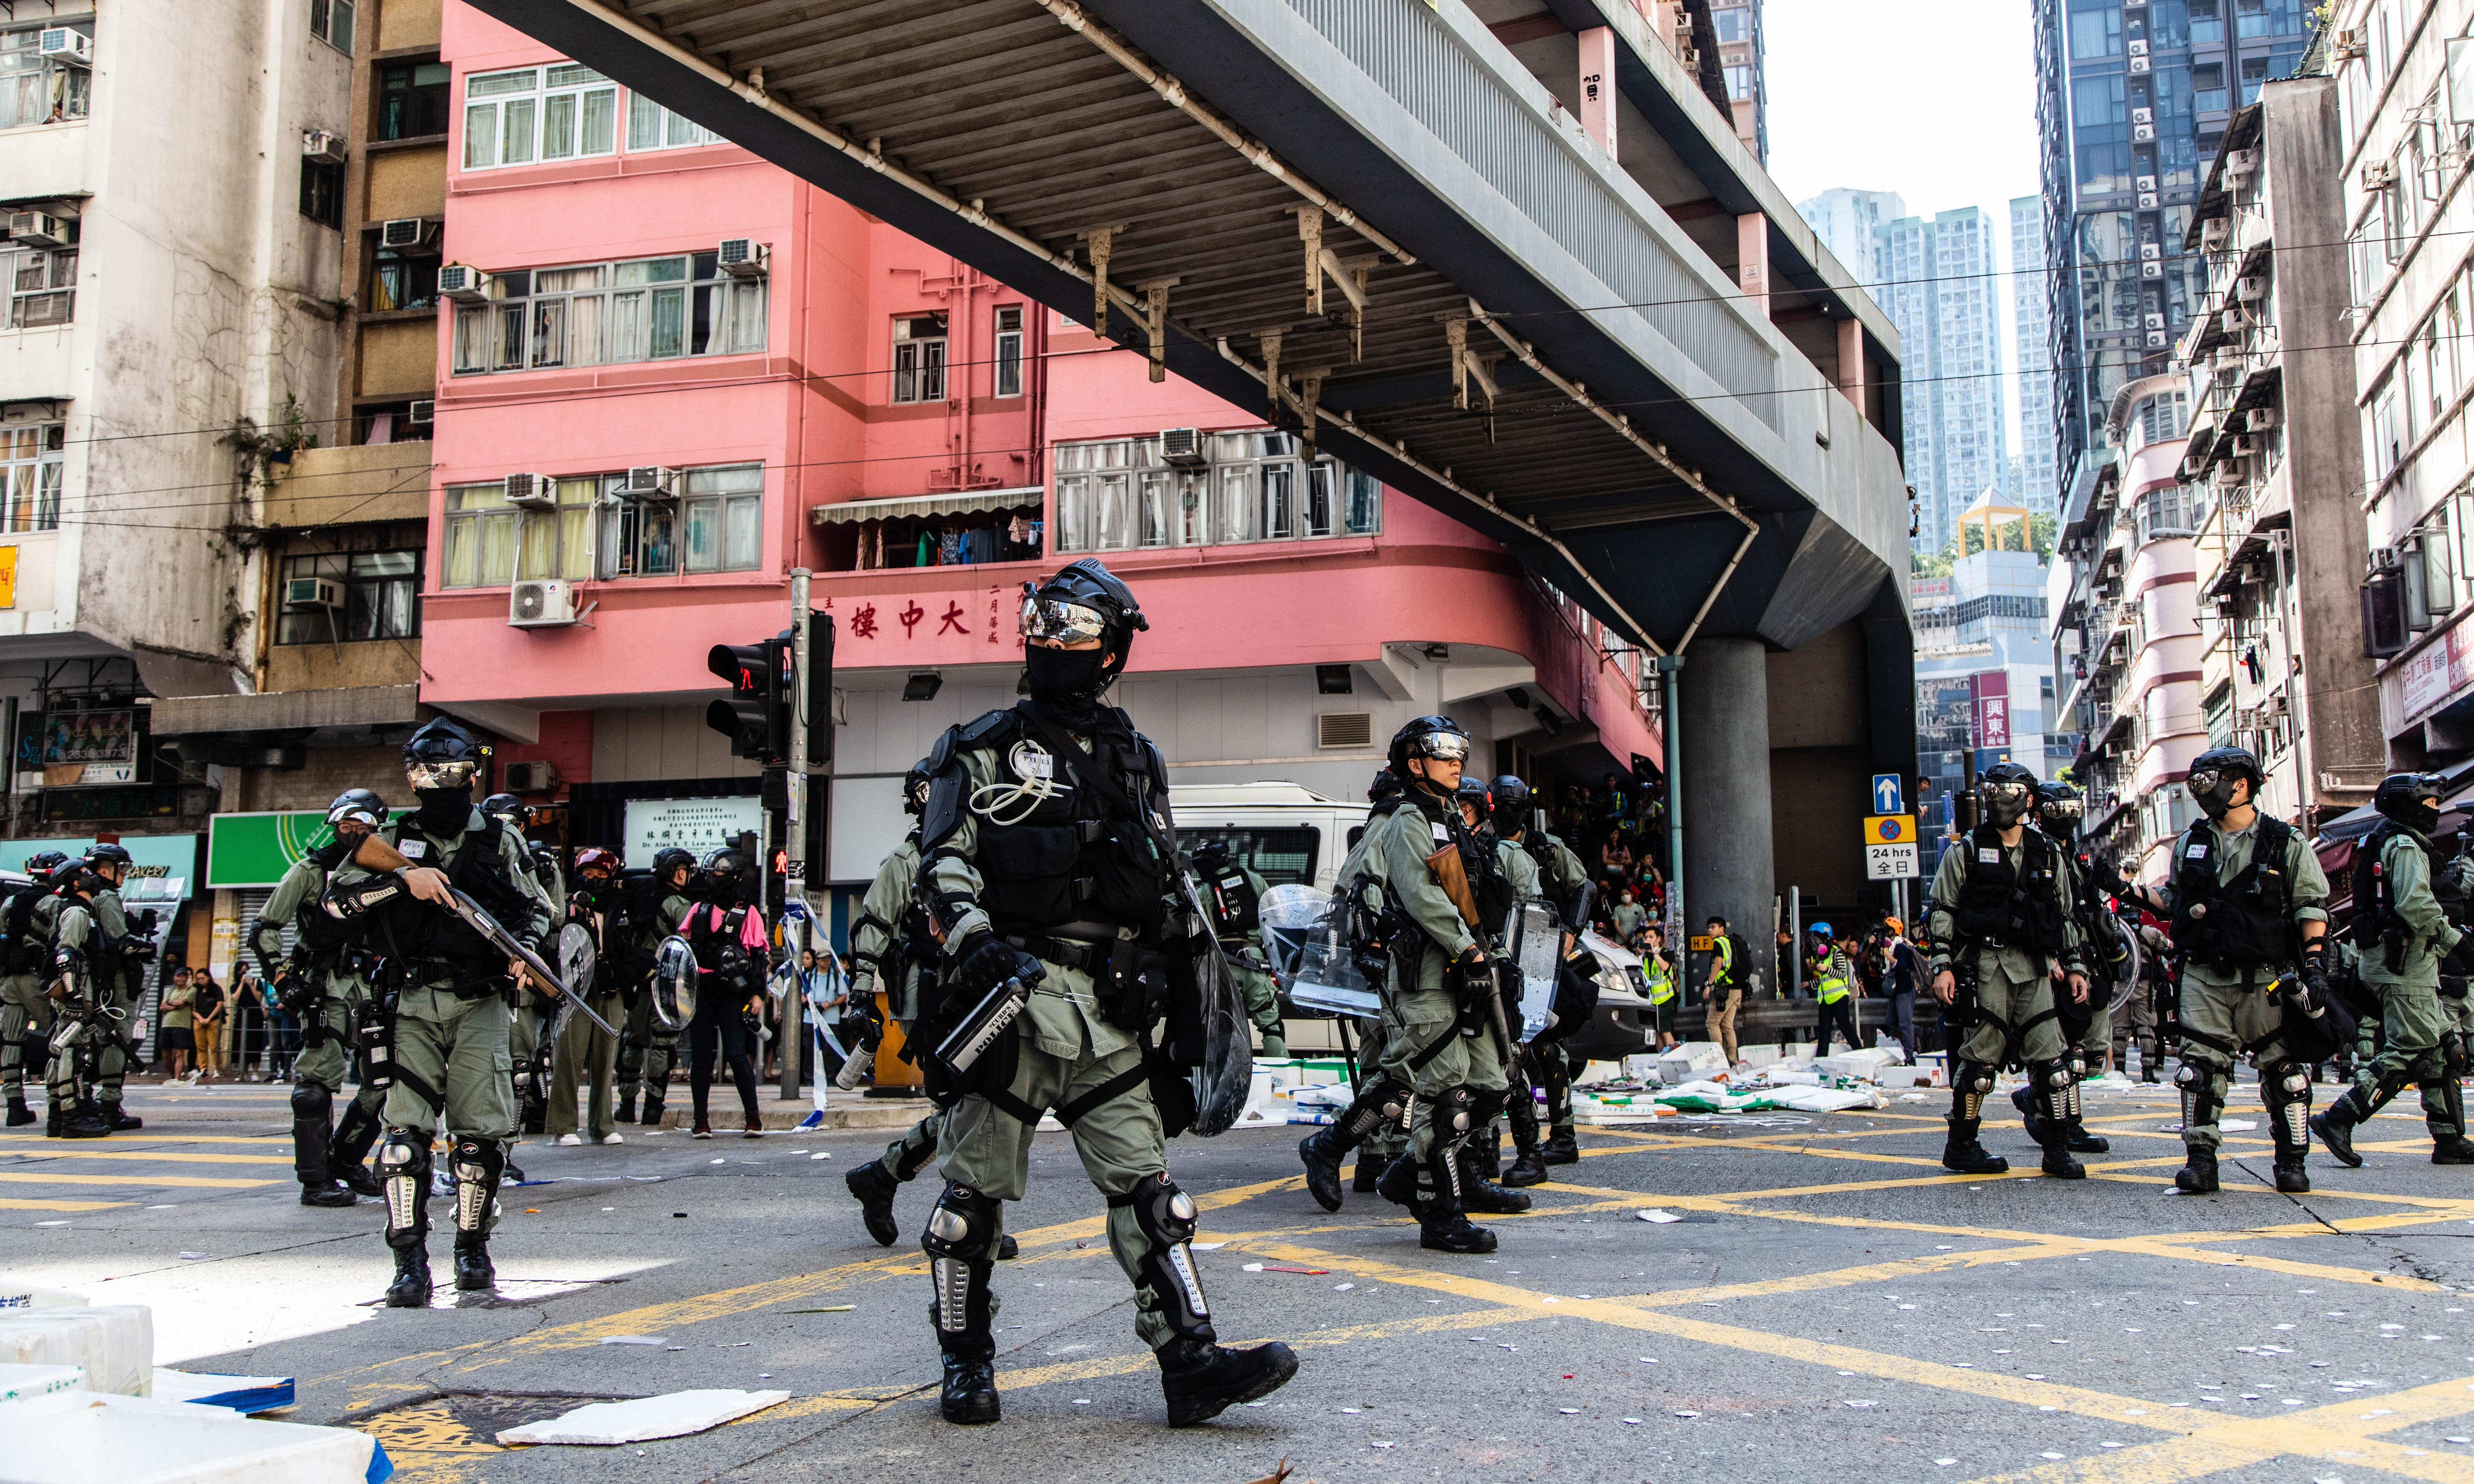 Protesters are pushing Hong Kong to brink of collapse, say police